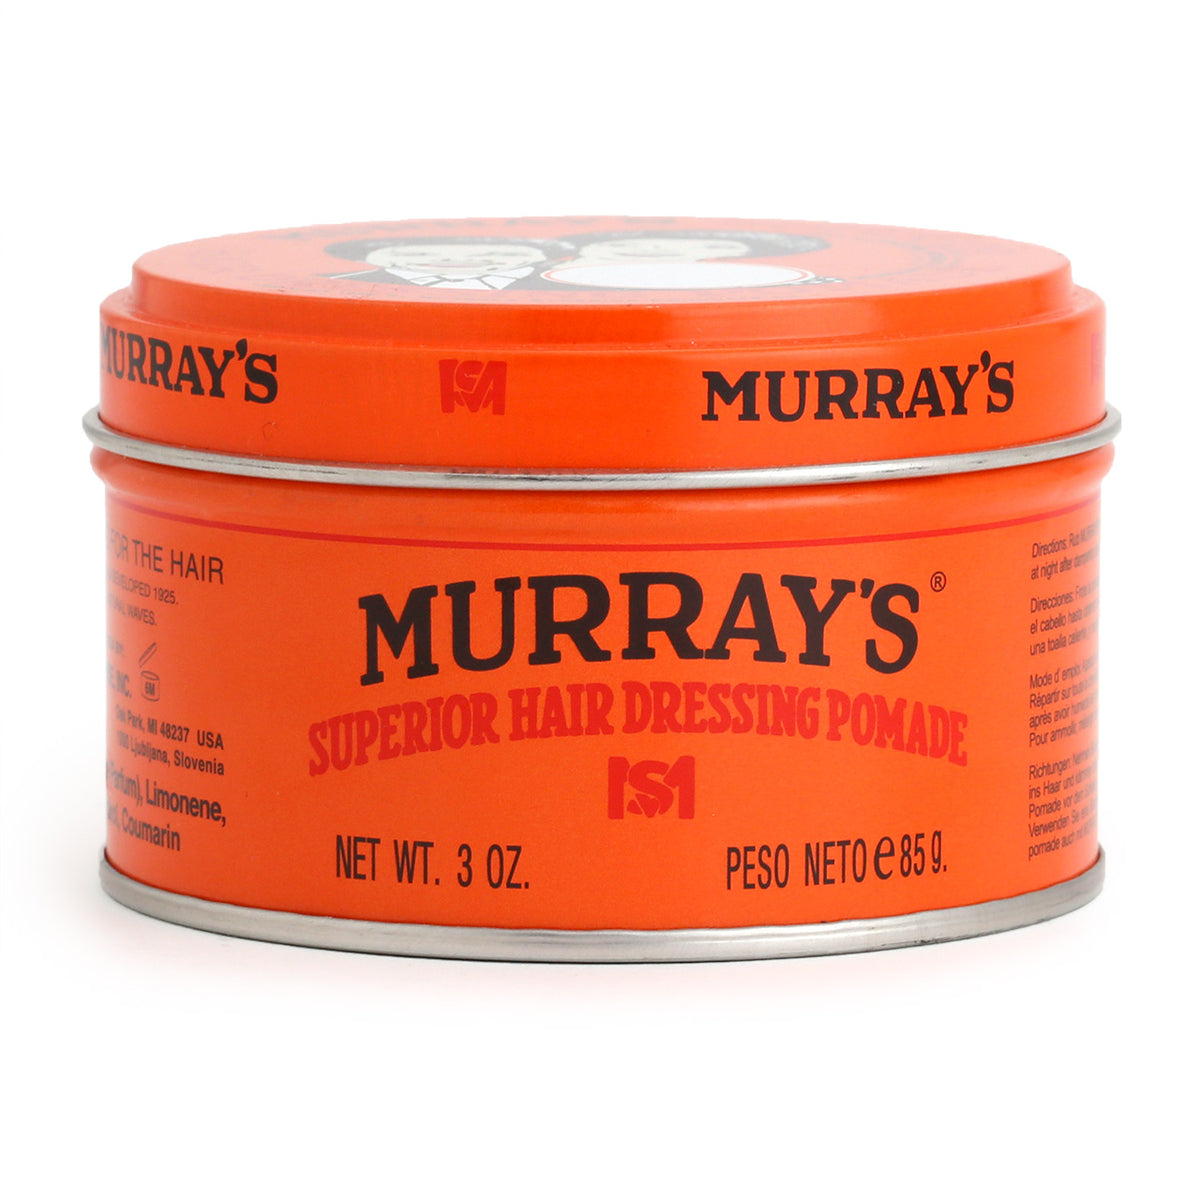 Murrays Superior Hair Dressing Pomade, 85g. Side view